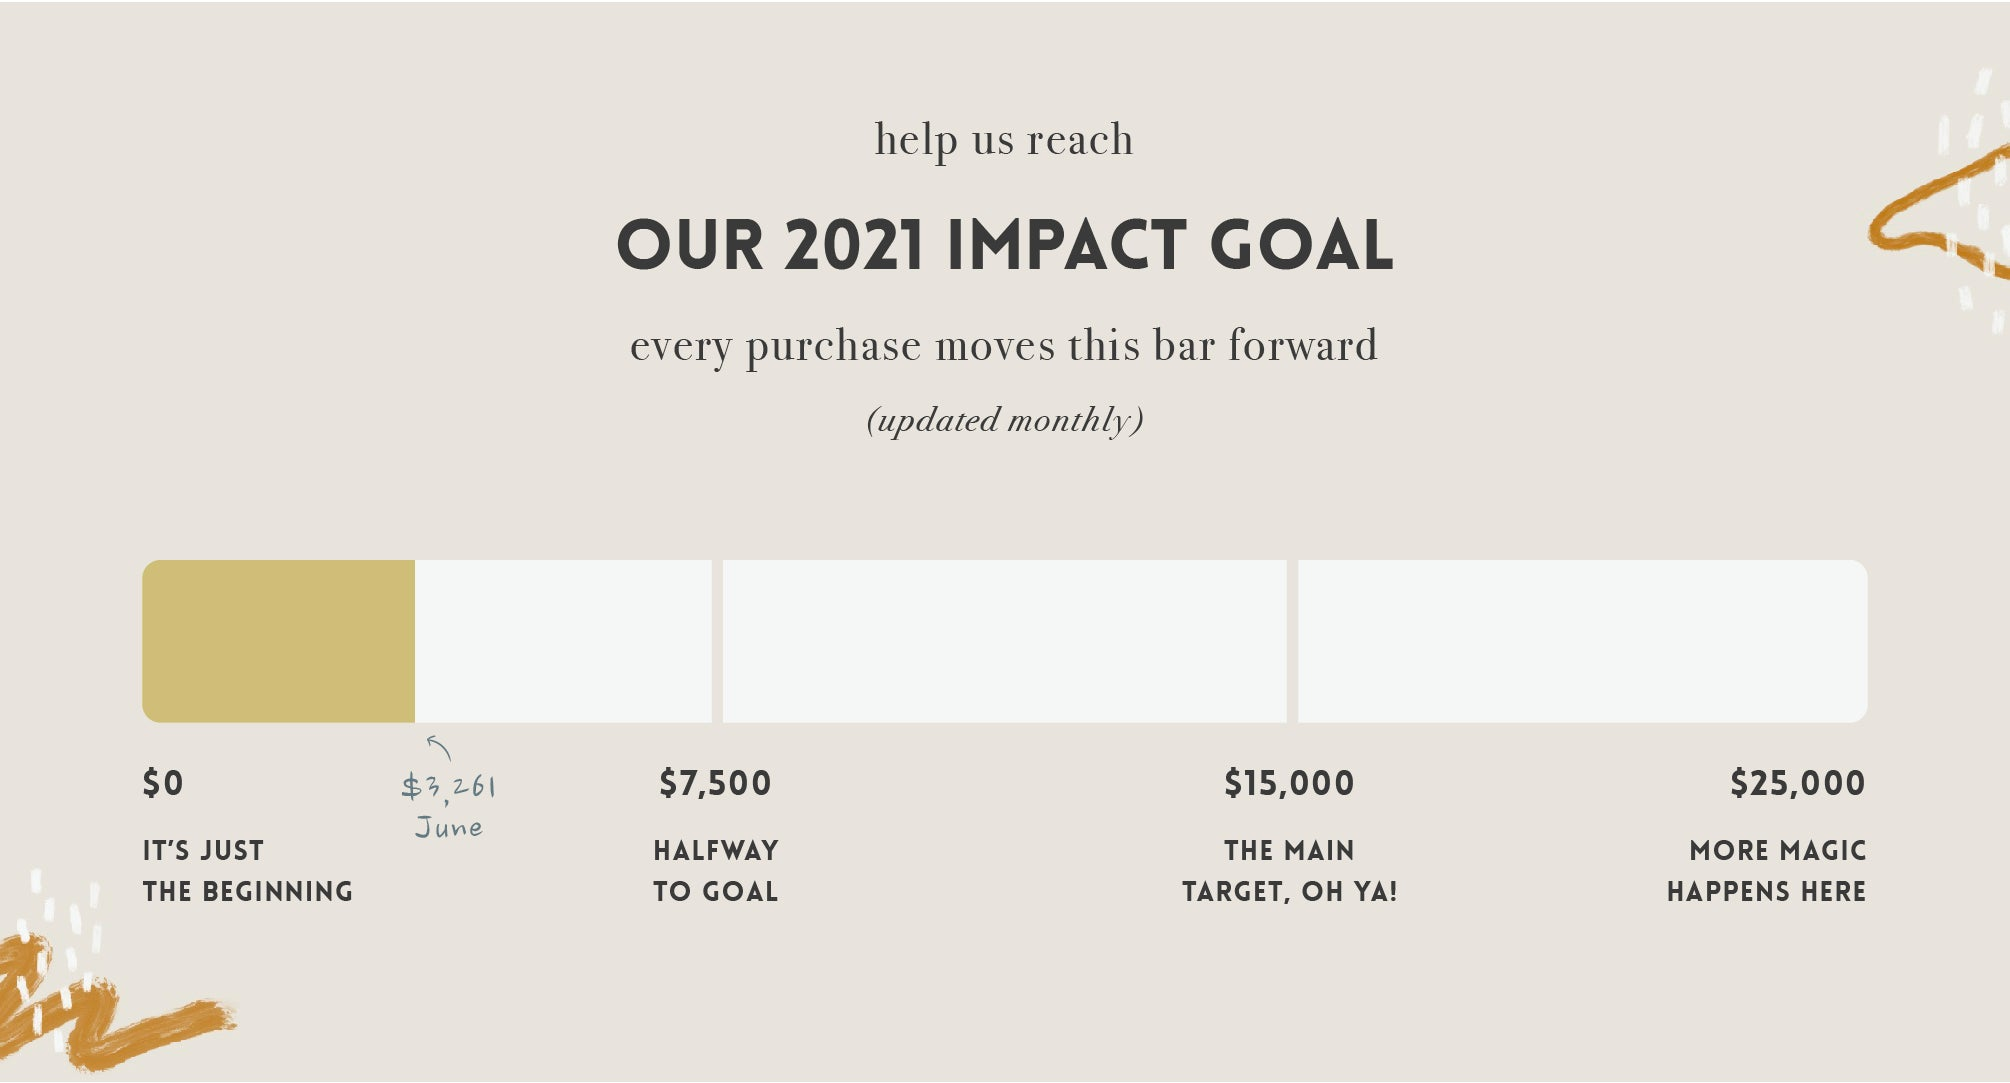 2021 Impact Goal for Scoria and Right To Play until June $3,261.